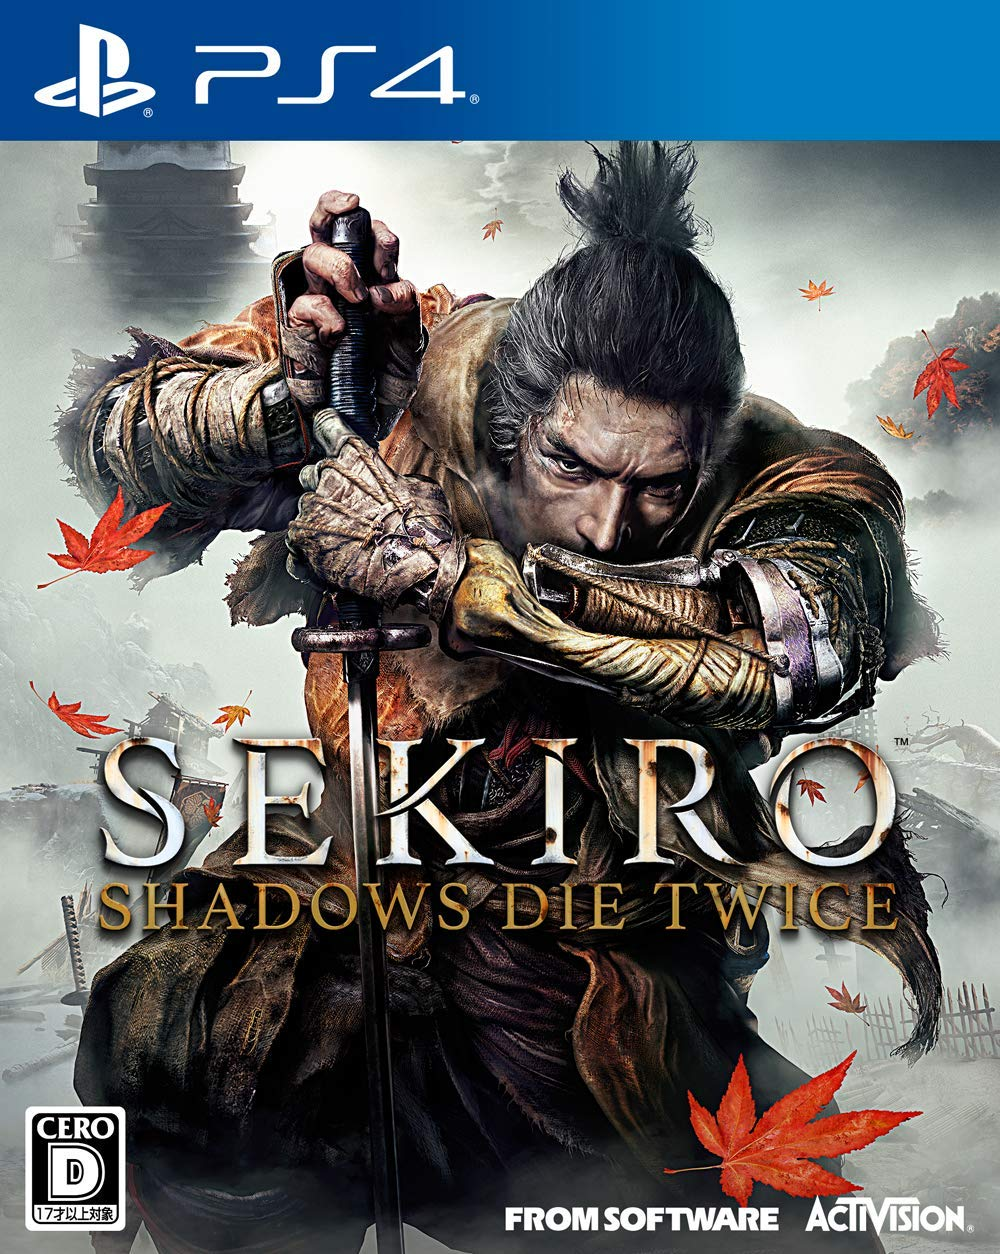 SEKIRO: SHADOWS DIE TWICE (PS4) 高価買取中